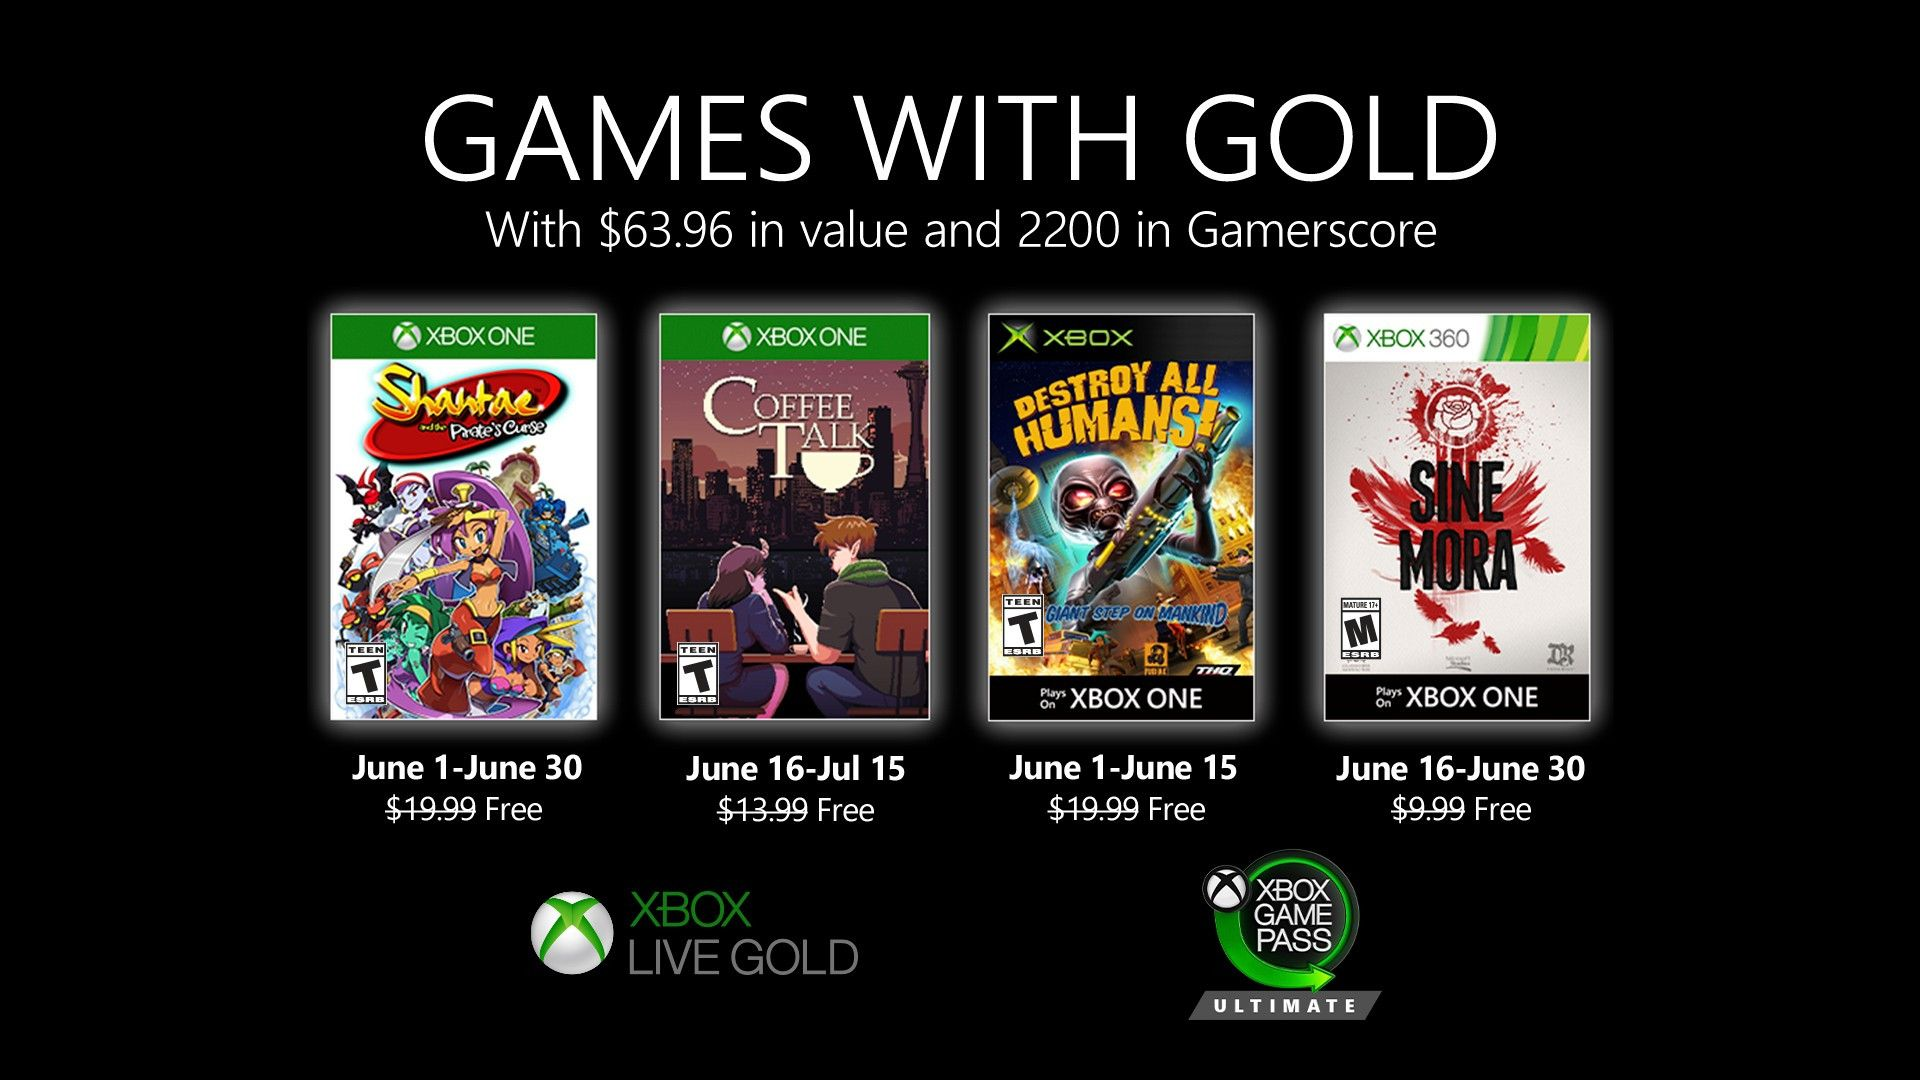 June 2020 S New Golden Game Xbox Wire Xbox One Xbox Xbox Games